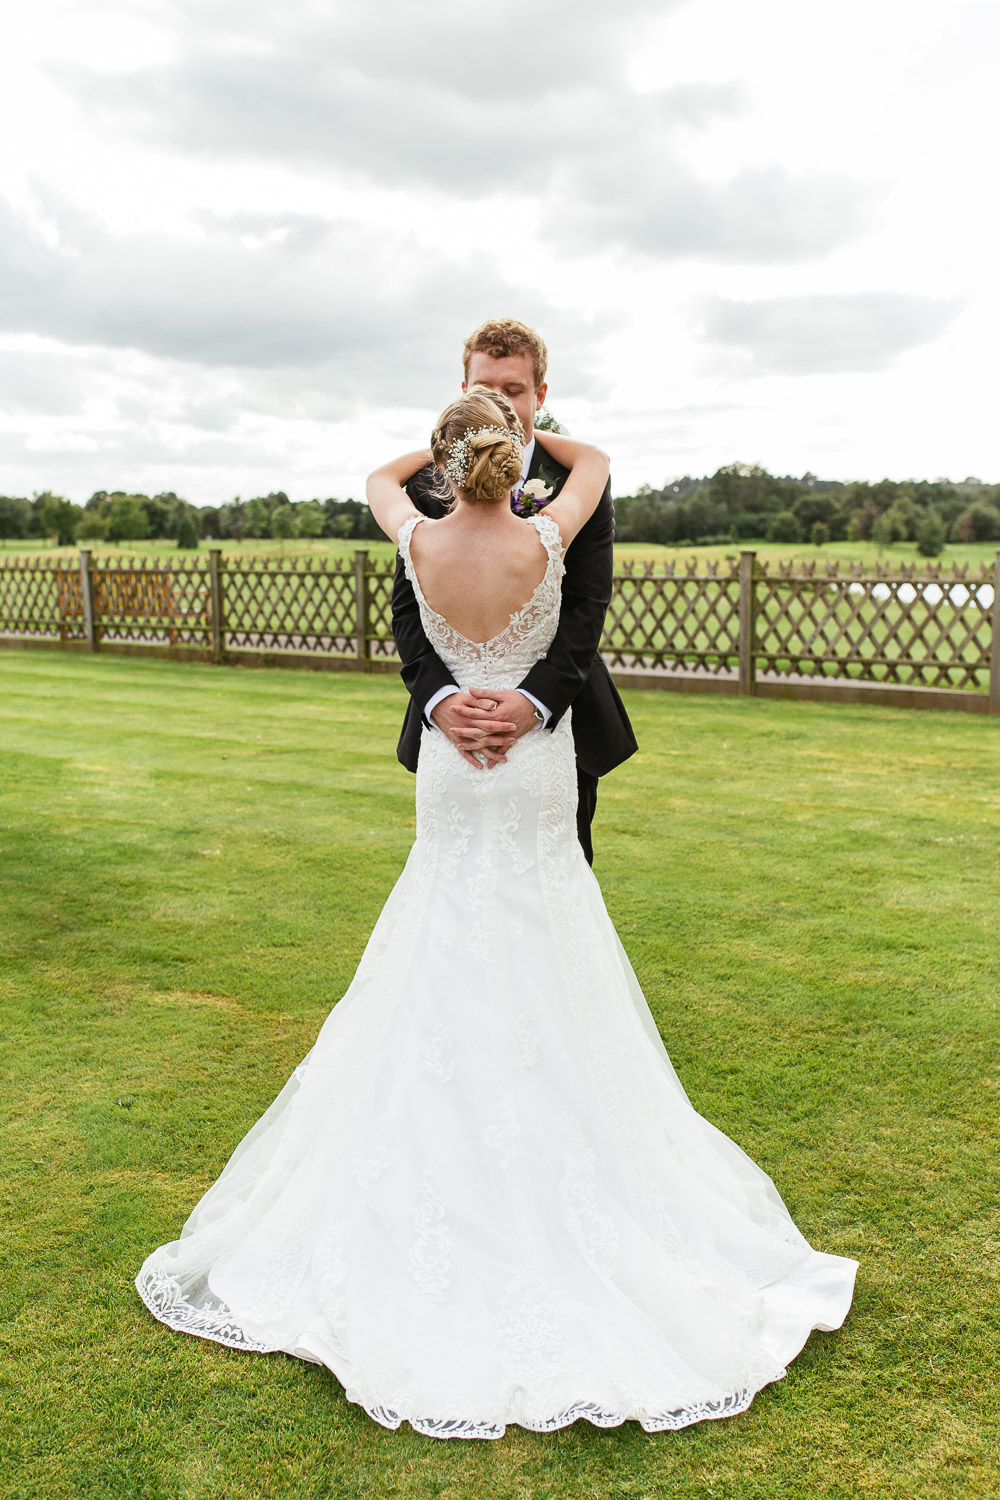 Siobhan-and-James-Wedding-Highlights-68.jpg